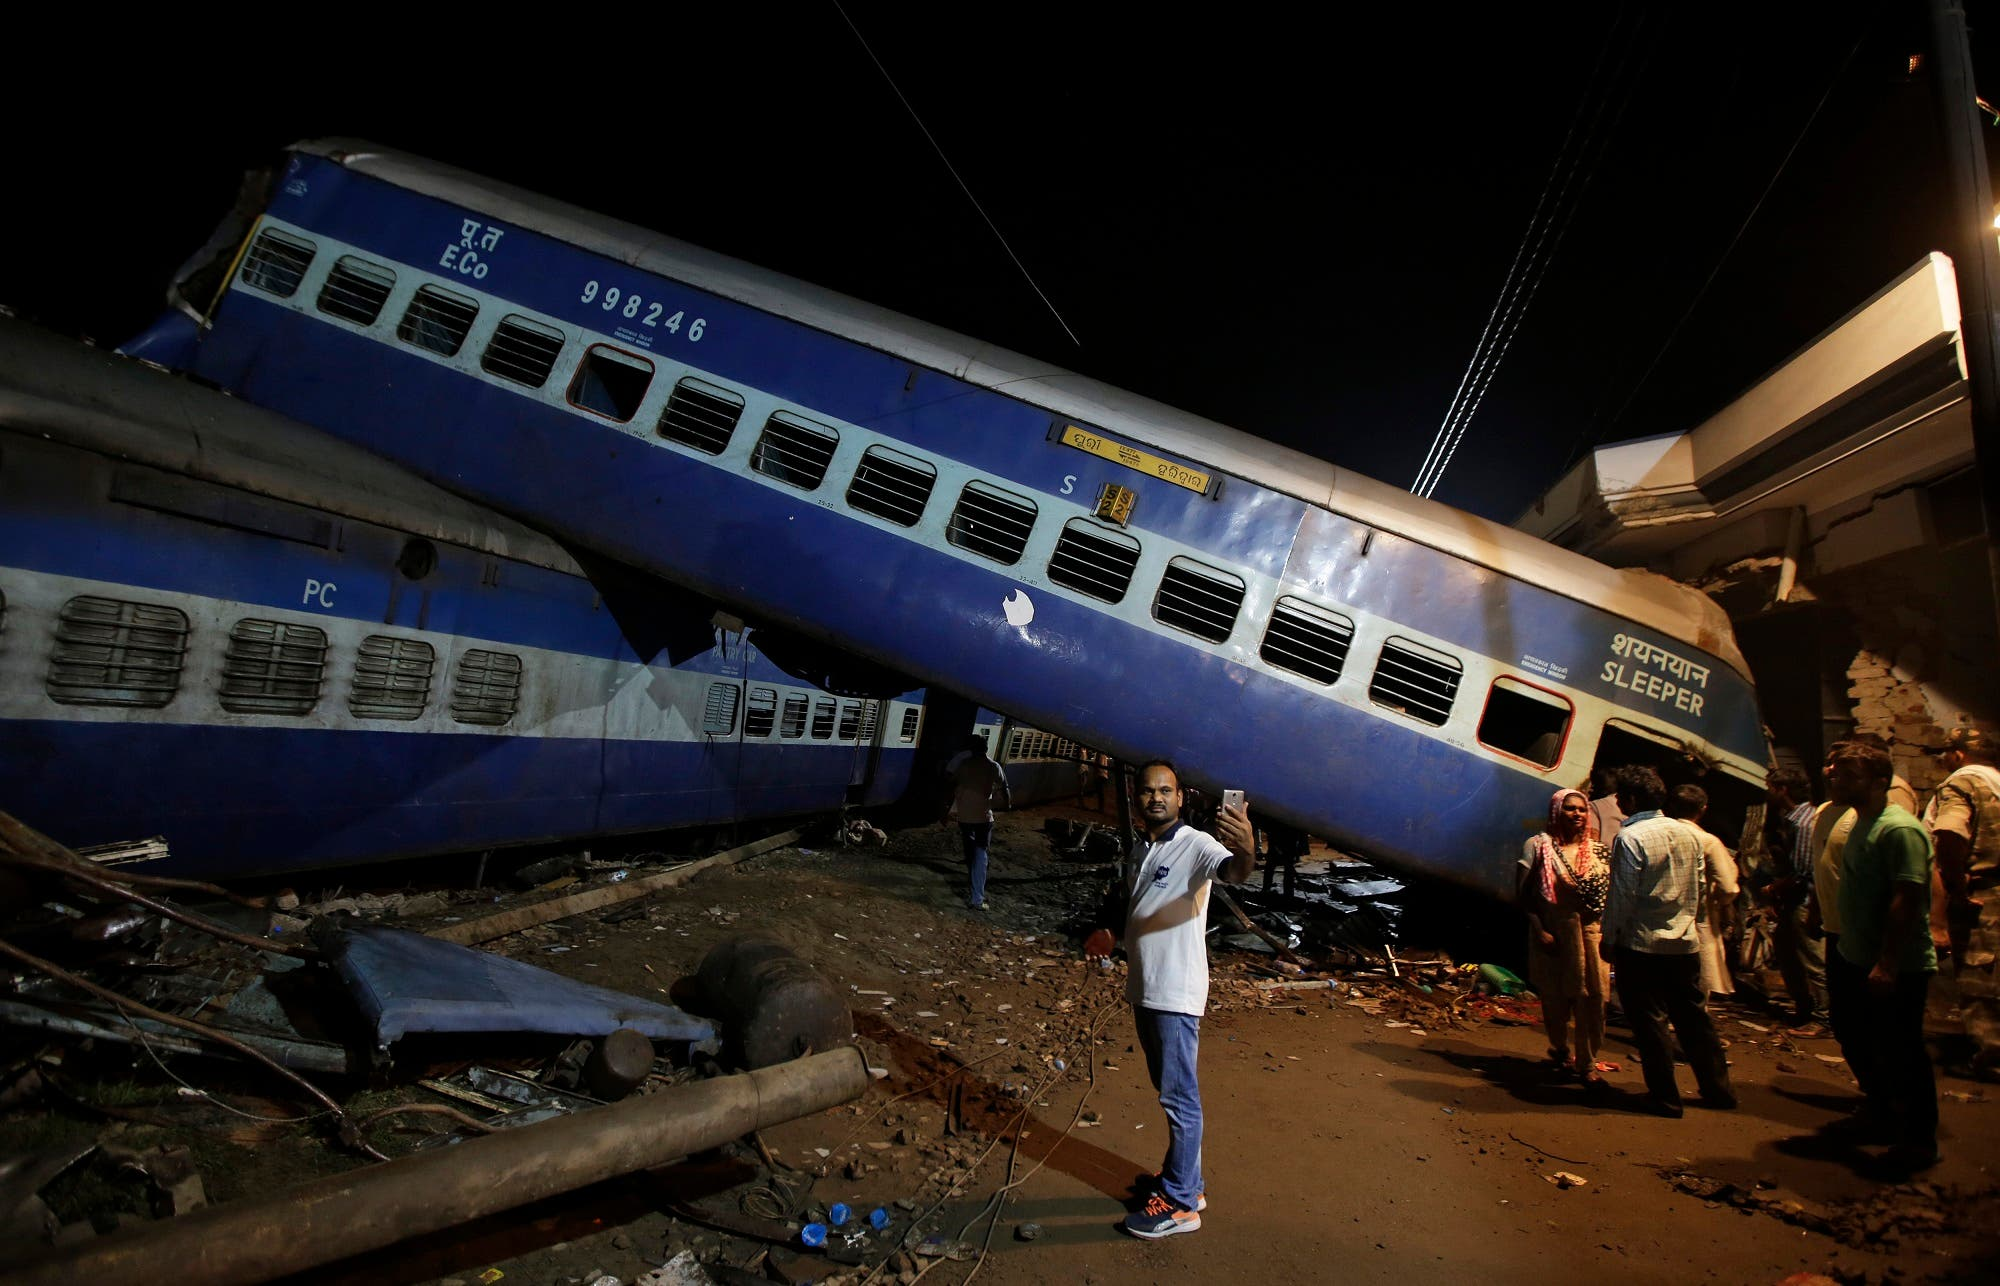 A man takes a selfie near the upturned coaches of a train after an accident in Uttar Pradesh on Aug. 20, 2017. (AP)